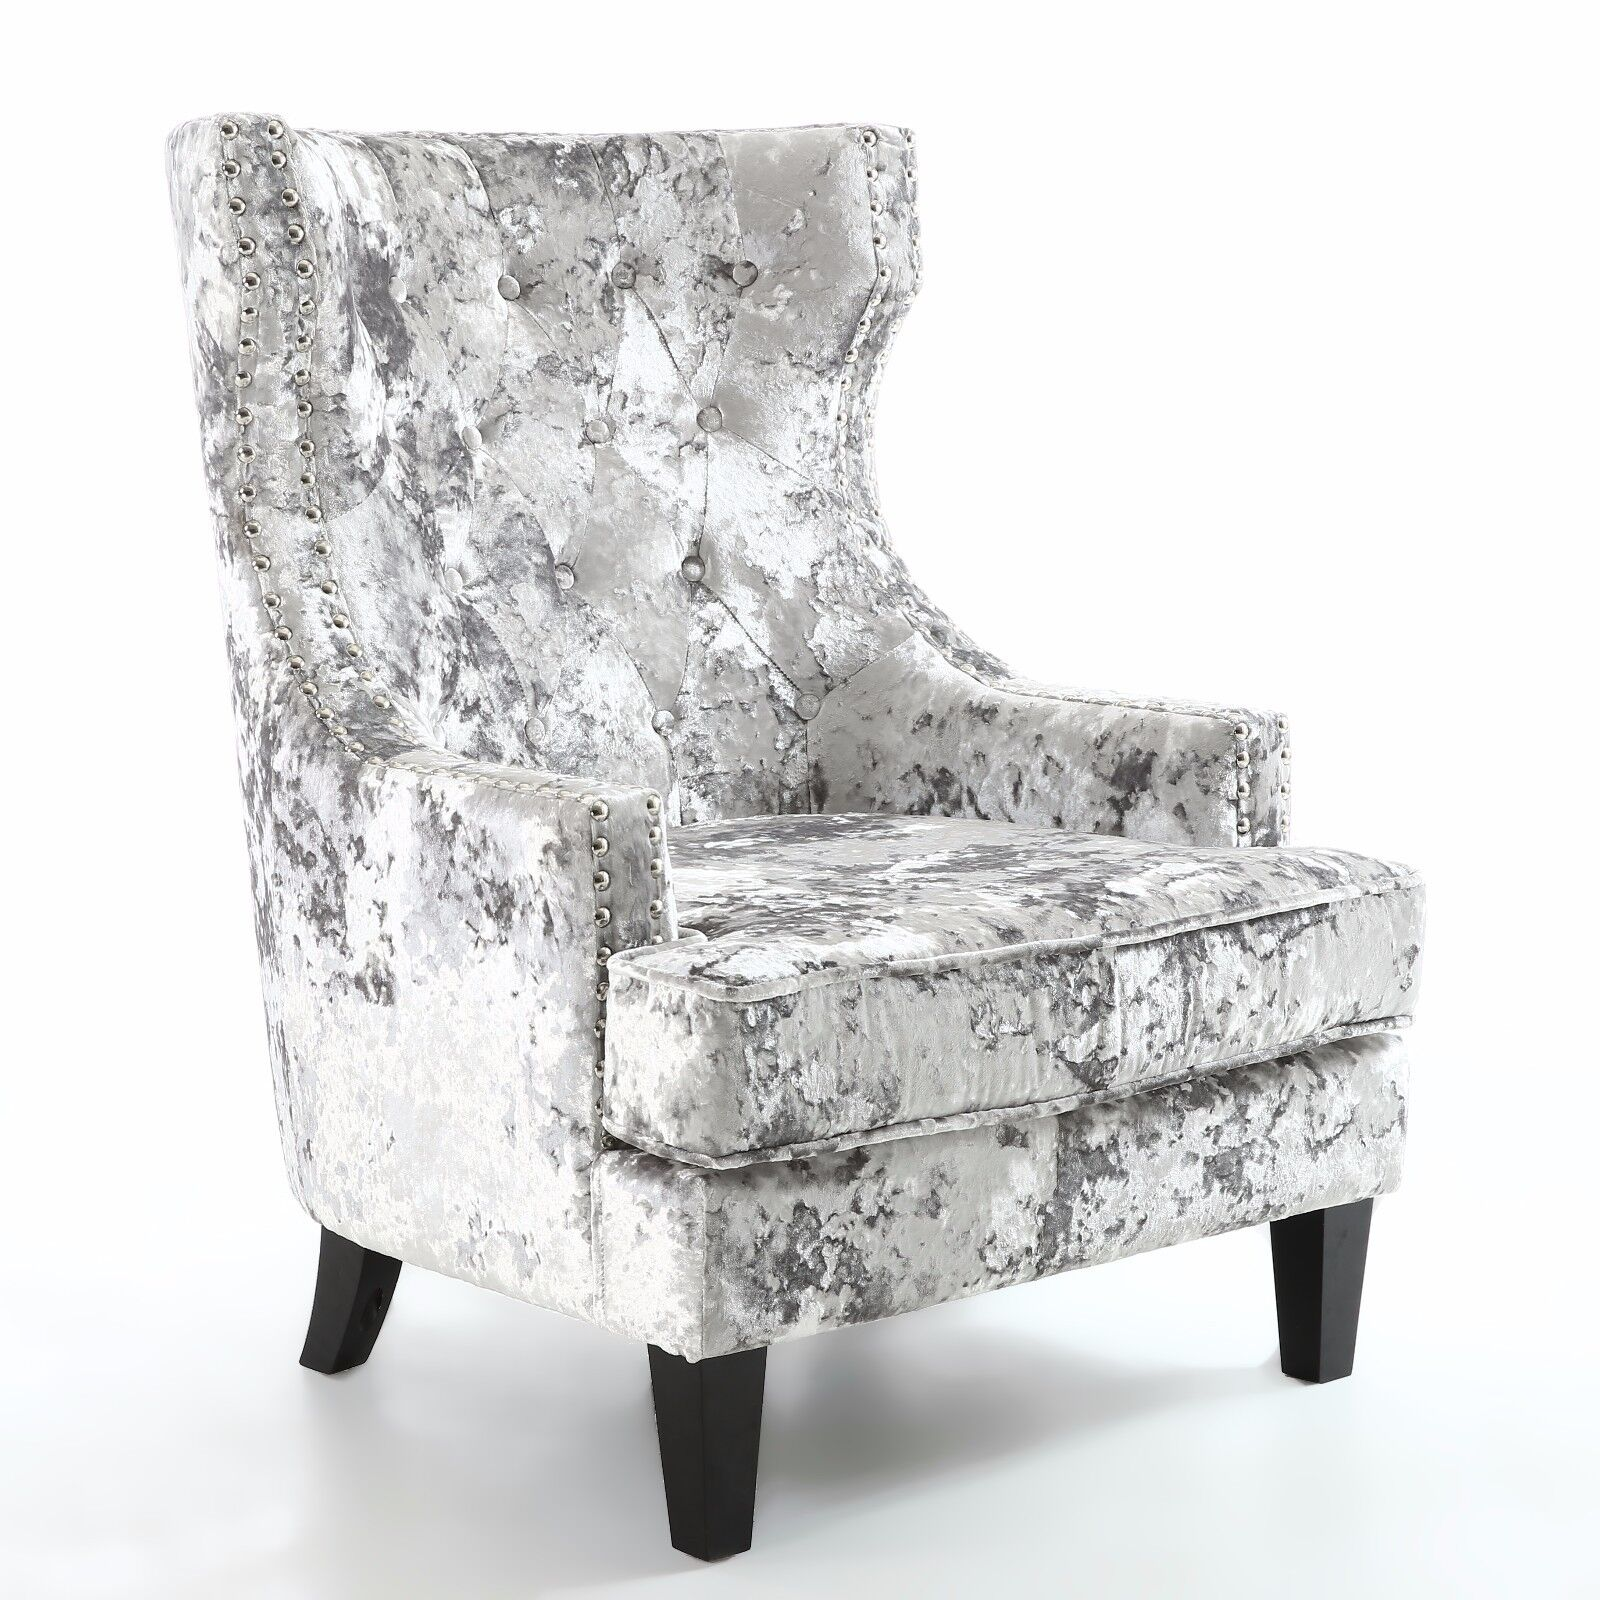 Enjoyable Details About Majesty Armchair Occasional Wing Back Accent Chair Silver Premium Crushed Velvet Bralicious Painted Fabric Chair Ideas Braliciousco